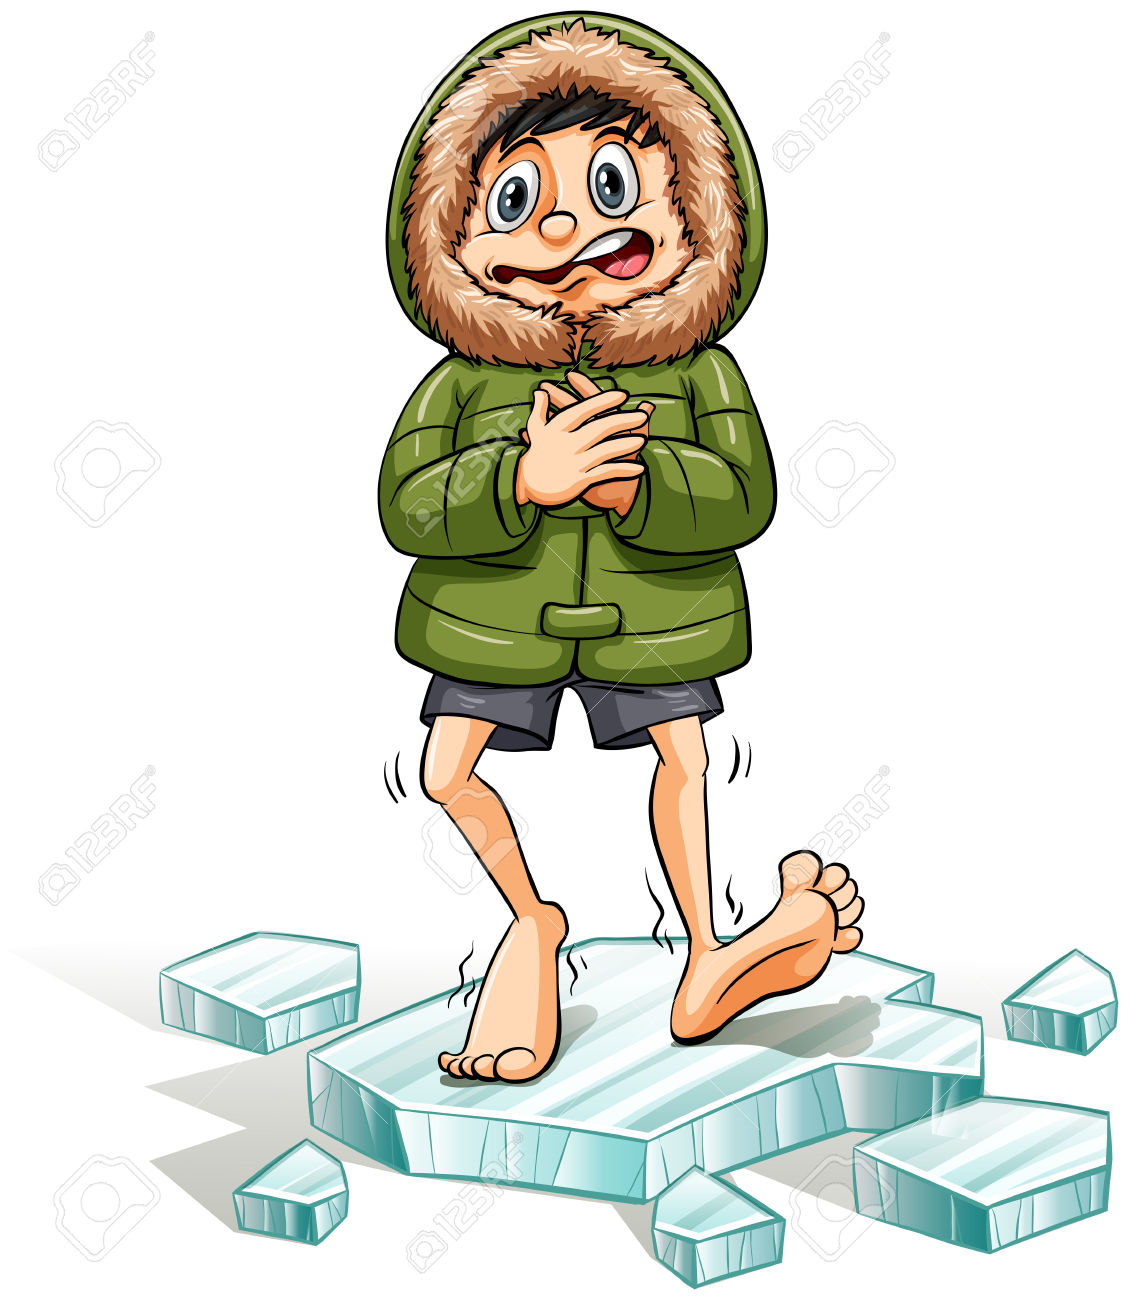 Clipart character in a block of ice clip art royalty free download 2,715 Ice Block Stock Vector Illustration And Royalty Free Ice ... clip art royalty free download